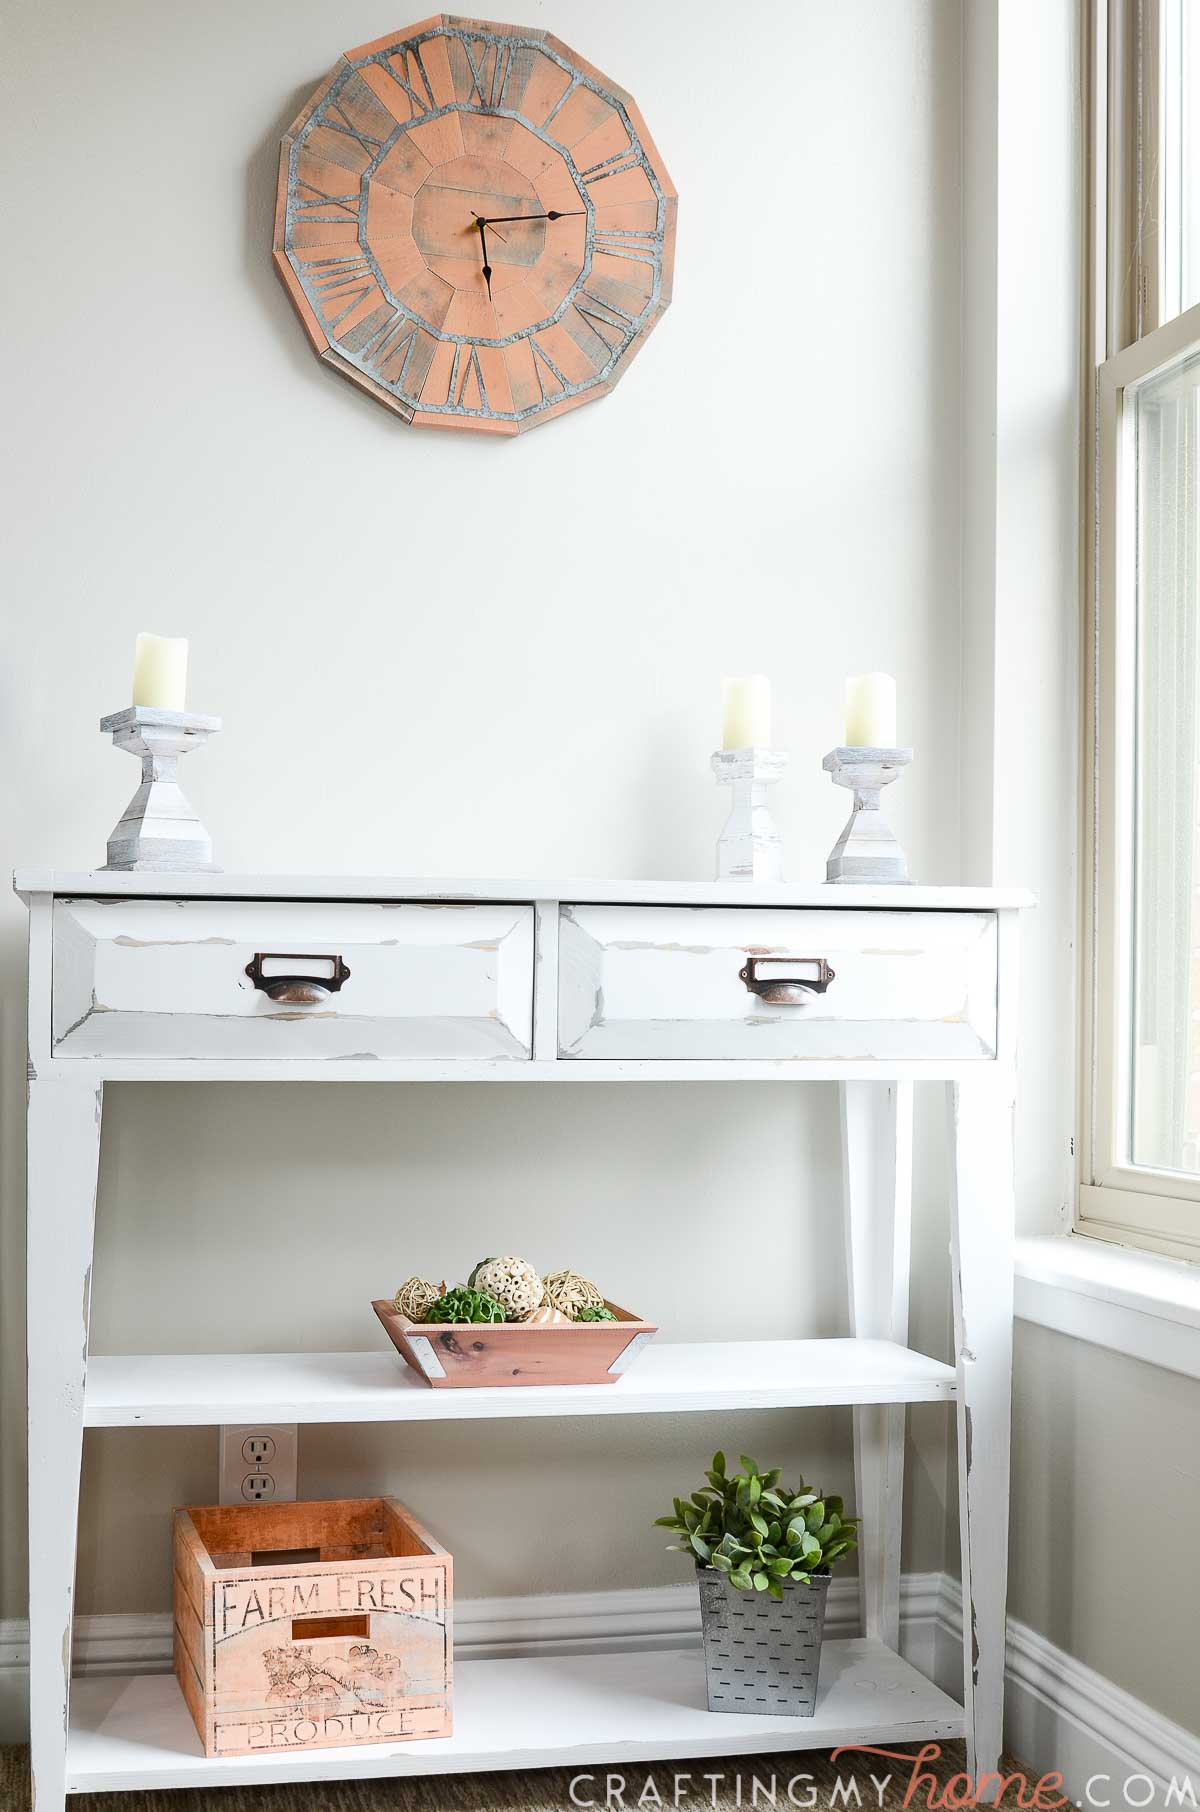 Small white console table with farmhouse decor on it and the paper wall clock hanging above it.